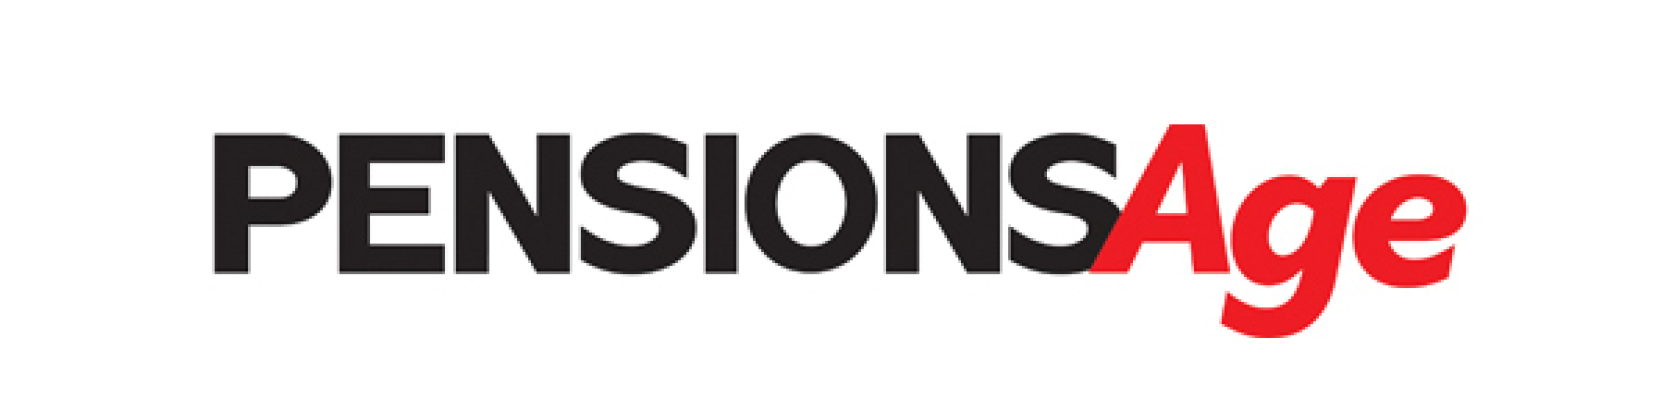 Pensions Age logo.png